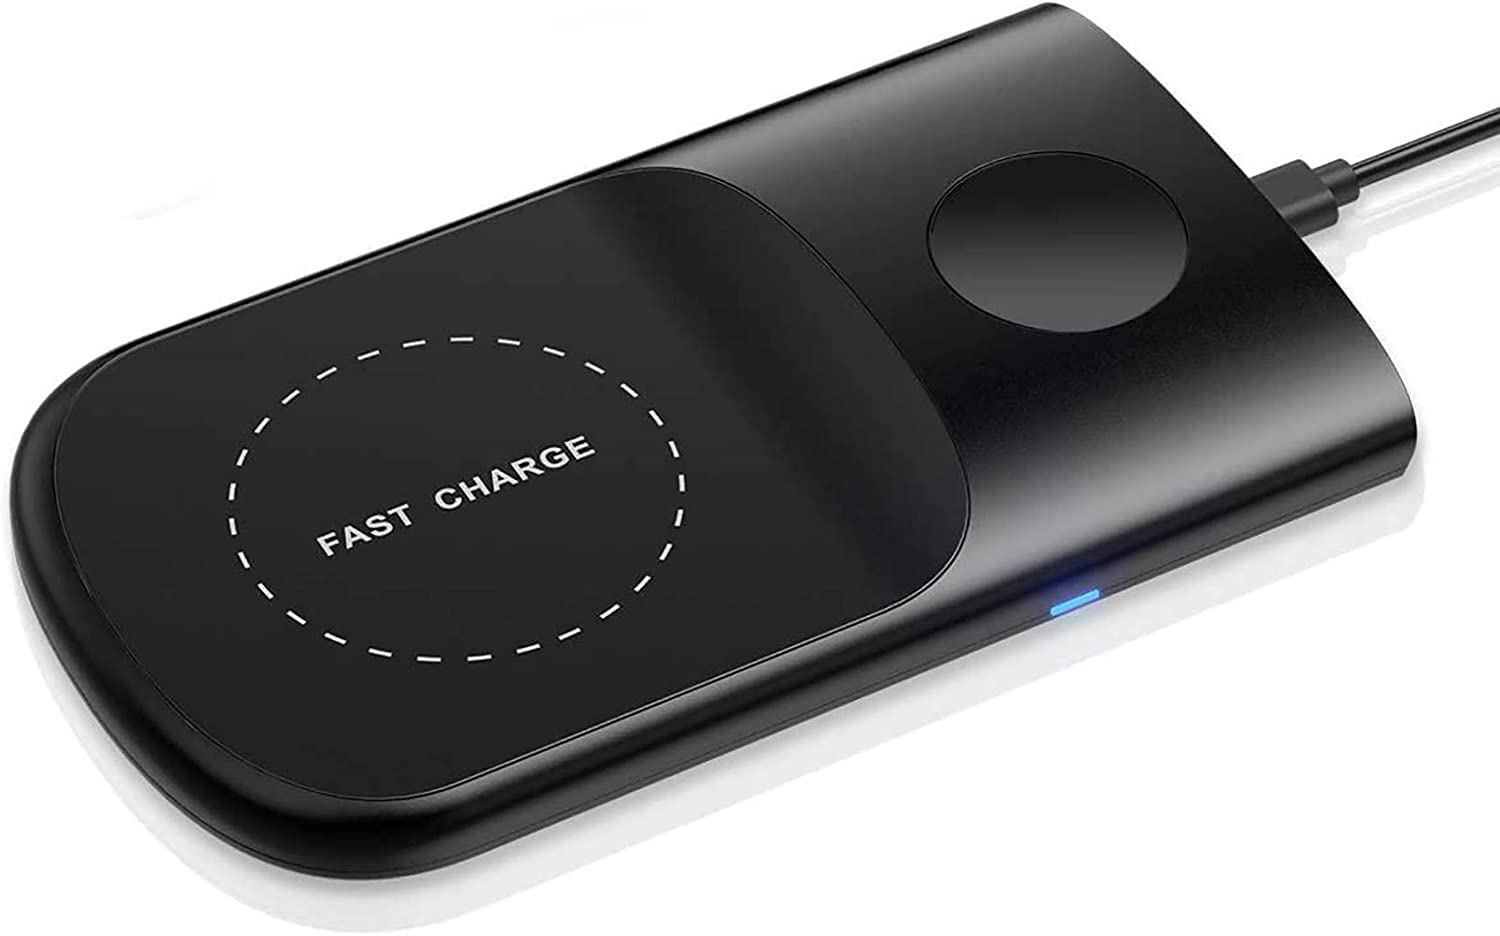 Wireless Charger [with 18W Adapter], HoRiMe 3 in 1 Wireless Charging Pad for AirPods/Apple Watch Series 5/4/3/2/1, Fast iPhone Wireless Charger for iPhone 11/11 Pro/11 Pro Max/XS Max/XR/X/8P (Black)